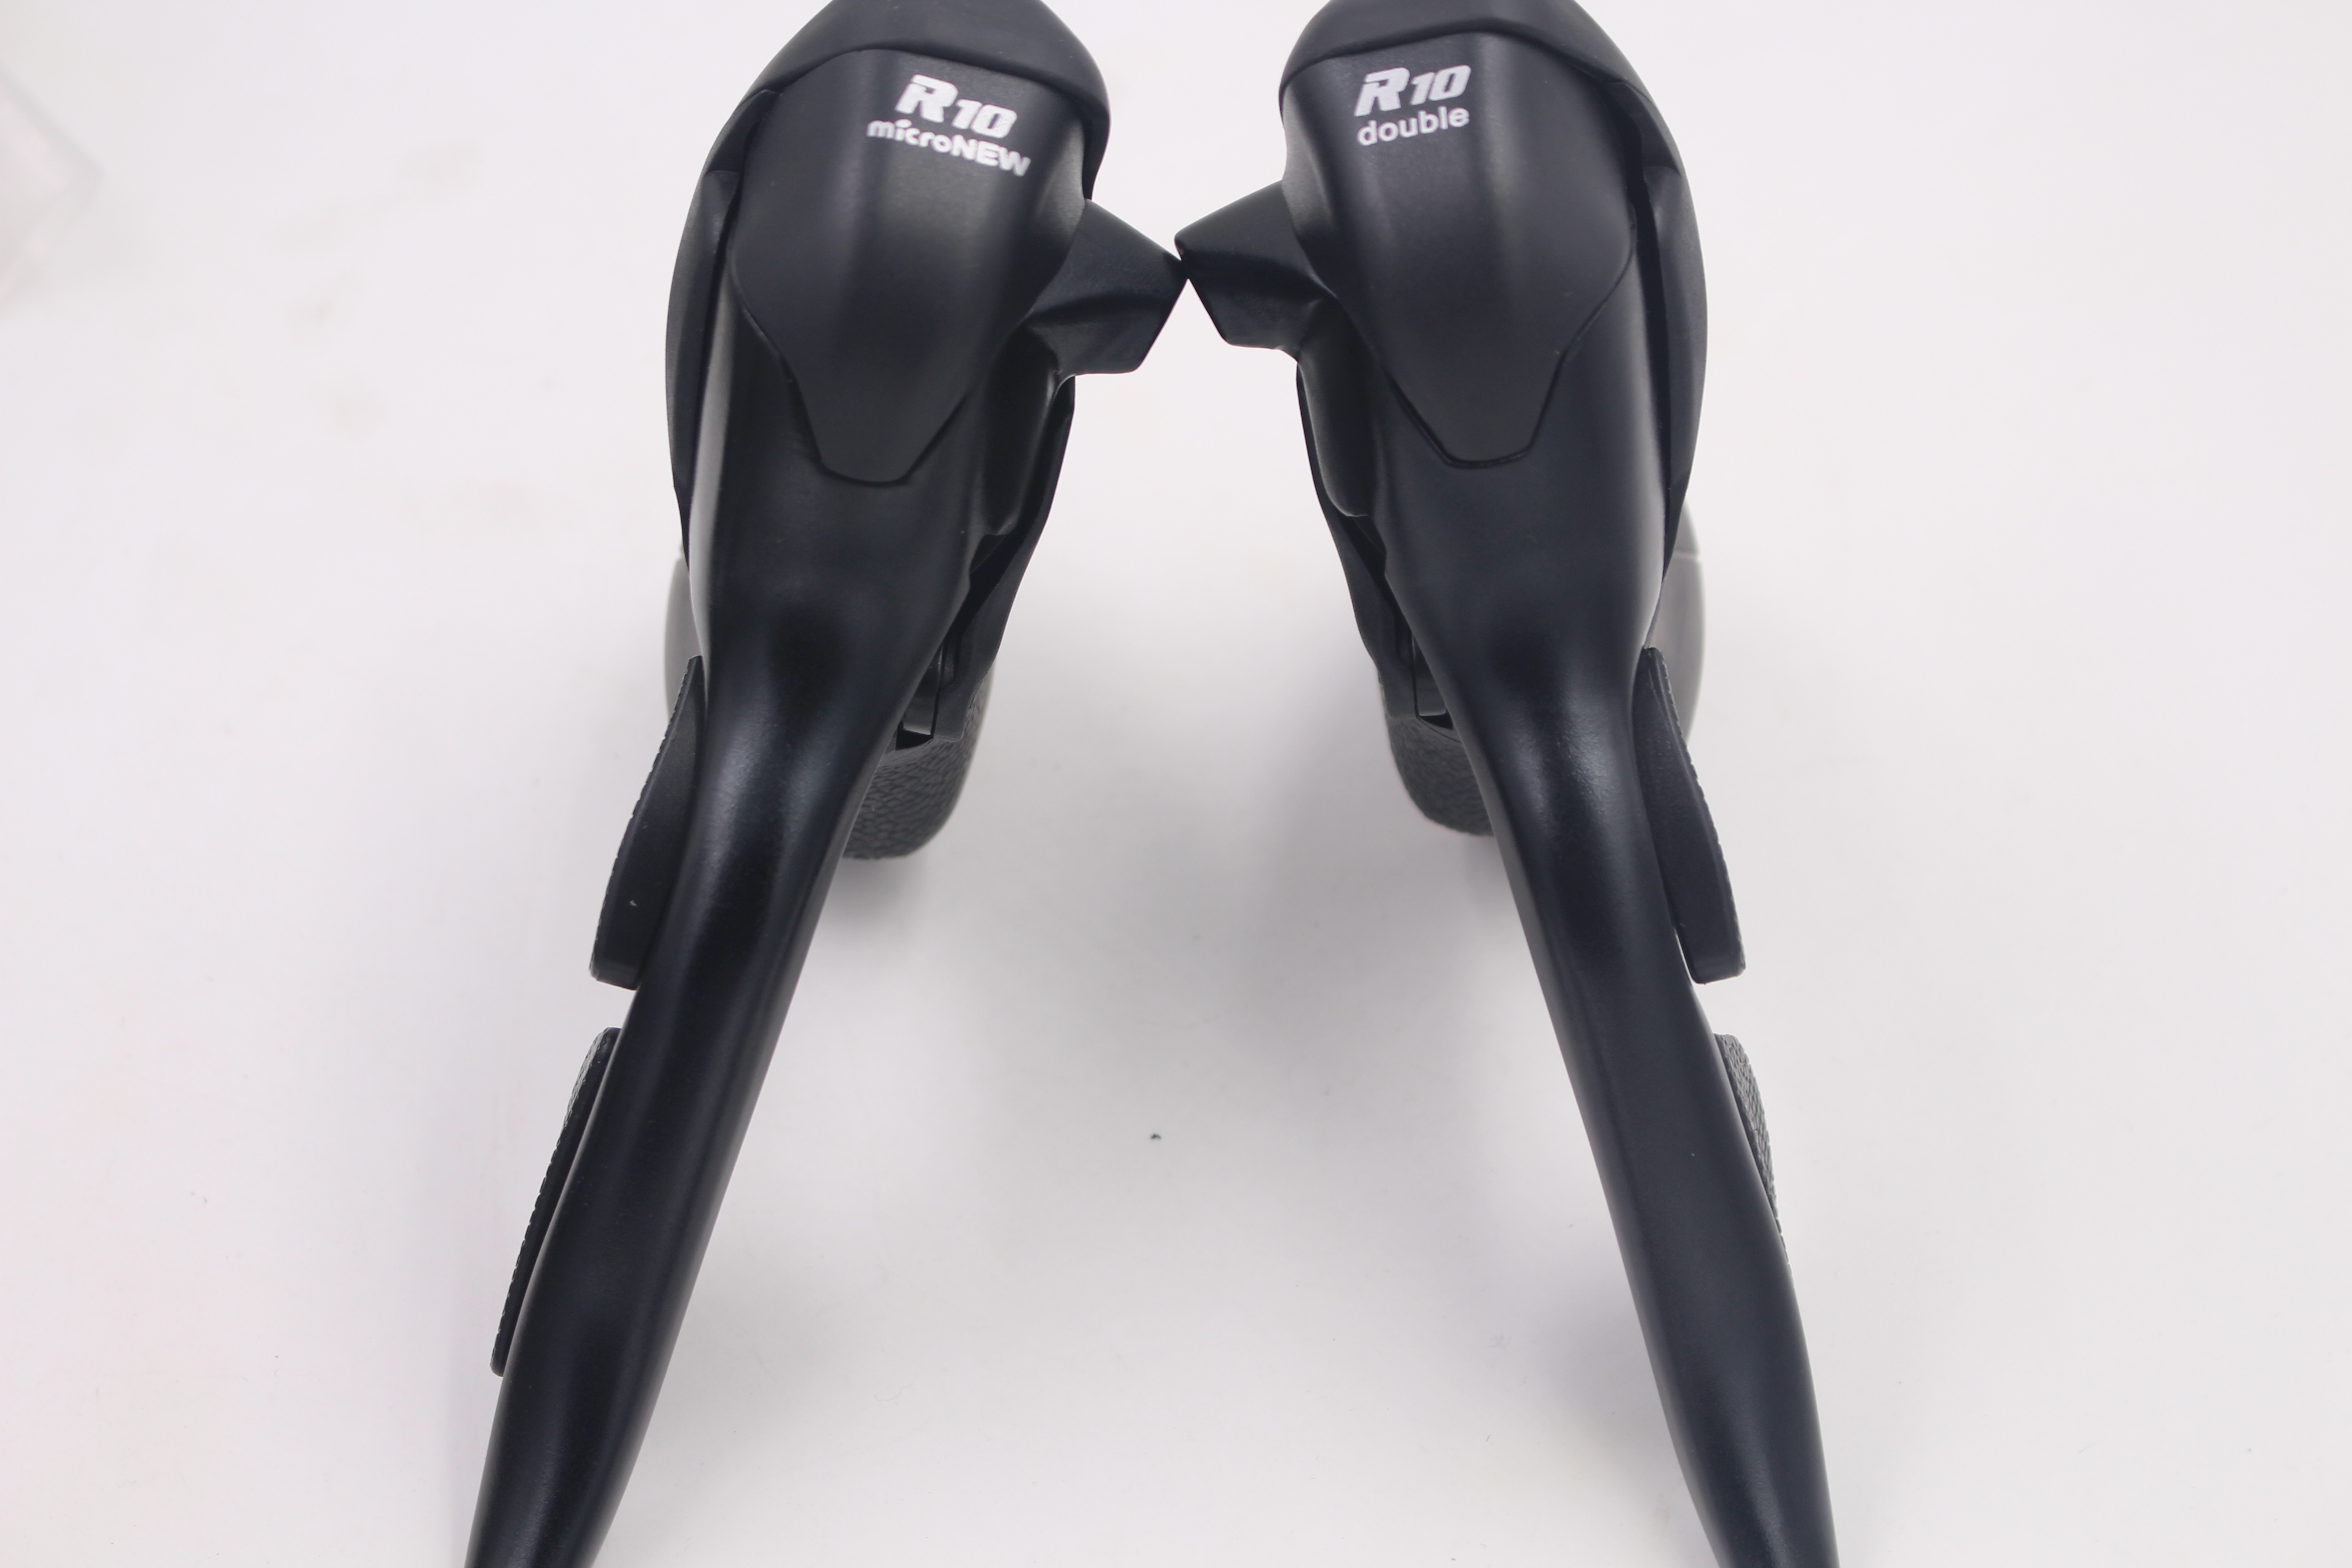 Micronew Road Bike STI Shifters, 2 x 10 speed,Compatible for <font><b>Shimano</b></font> <font><b>105</b></font> STI ST-5700 4600 Shifters Groupset image